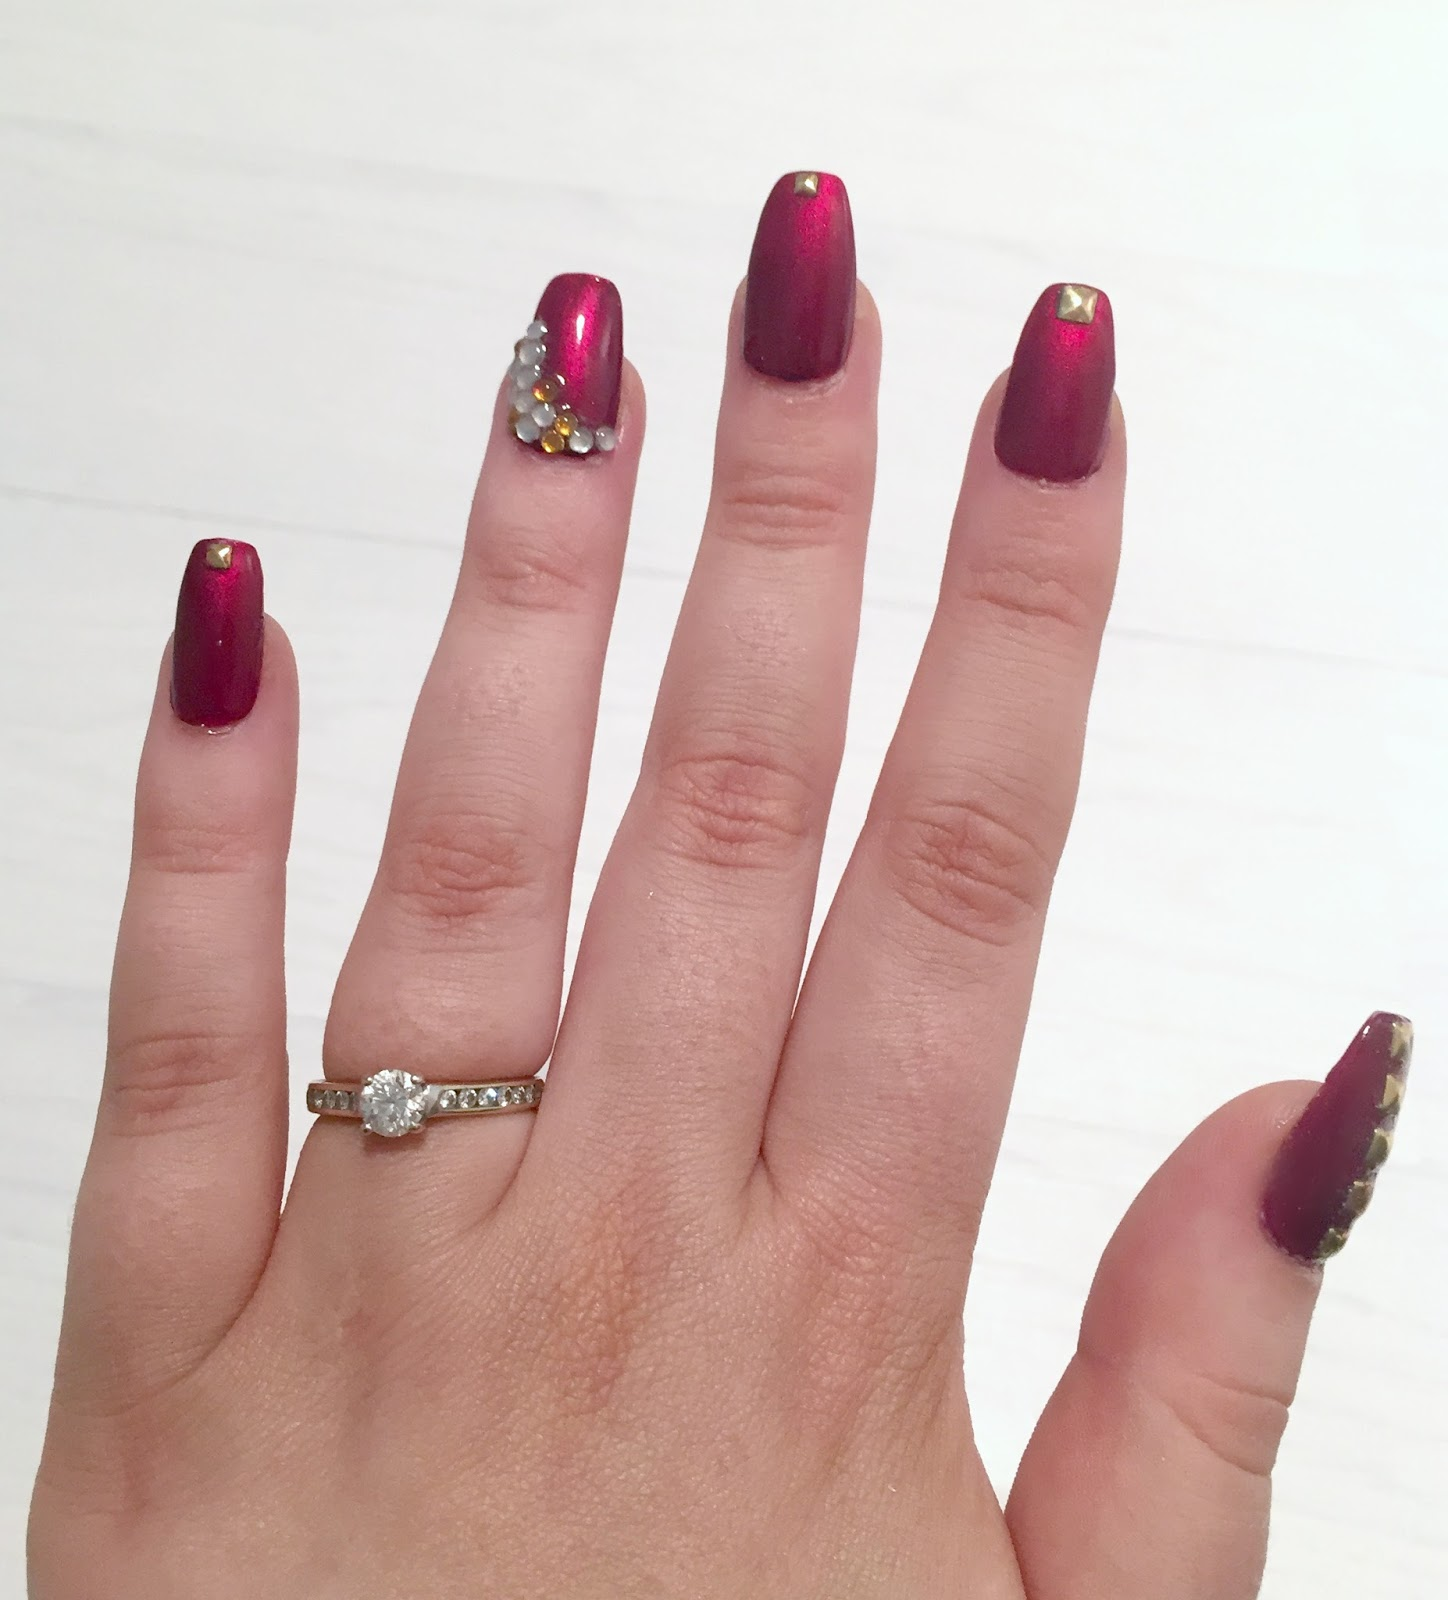 Coffin Designs Tease Flutter Pout Party Coffin Nails At Home